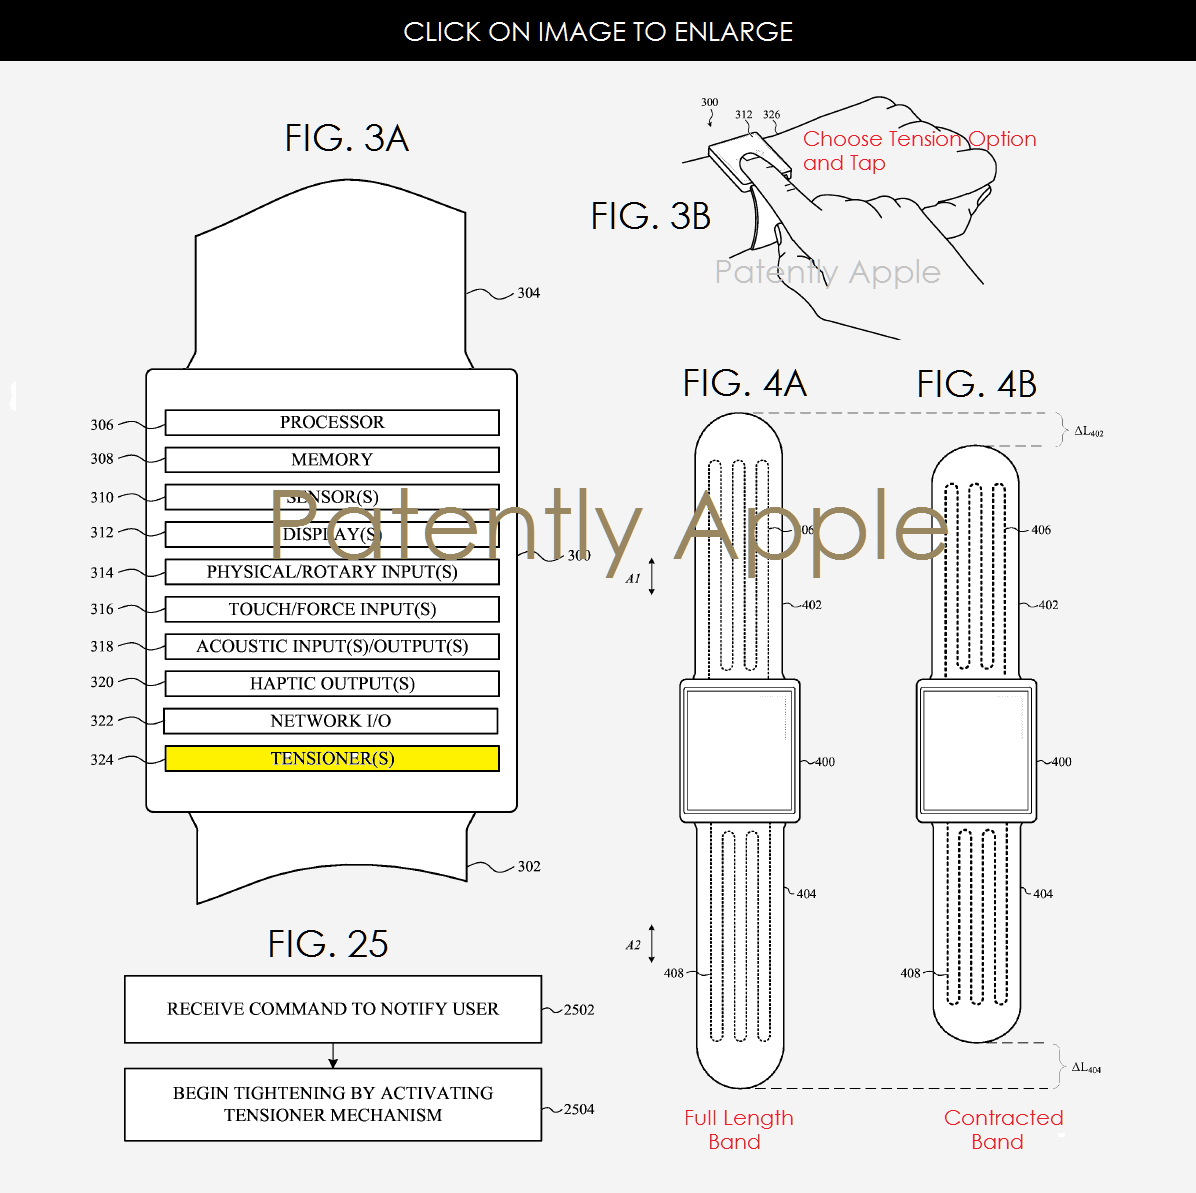 hight resolution of 25 noted above we re able to see a simple flow chart that depicts example operations of a method of dynamically adjusting the fit of a future apple watch